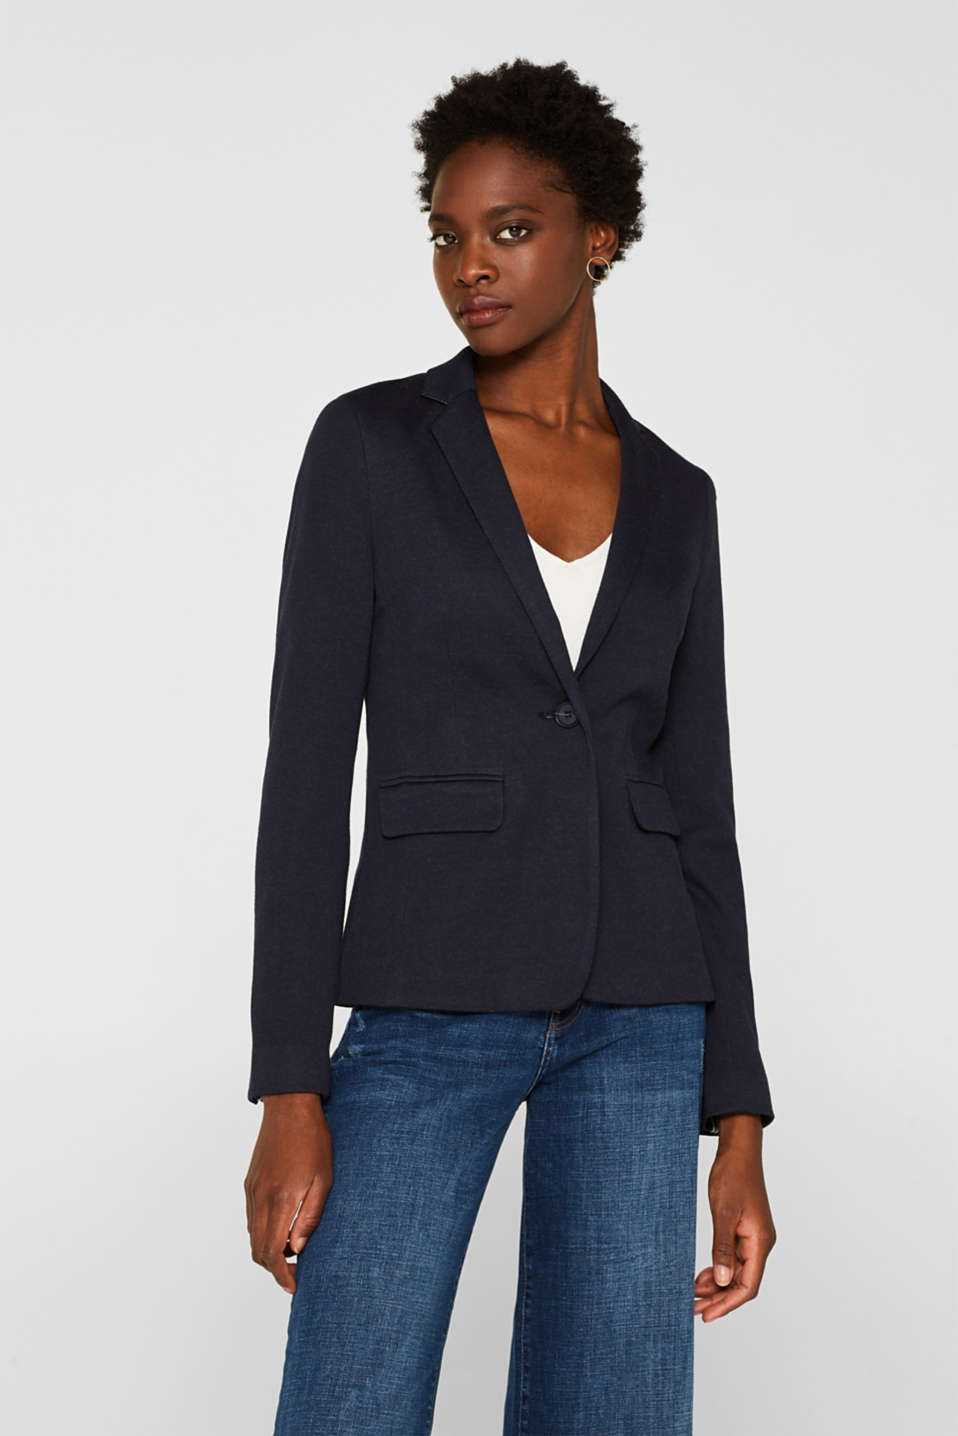 Esprit - Versatile blazer made of melange stretch jersey